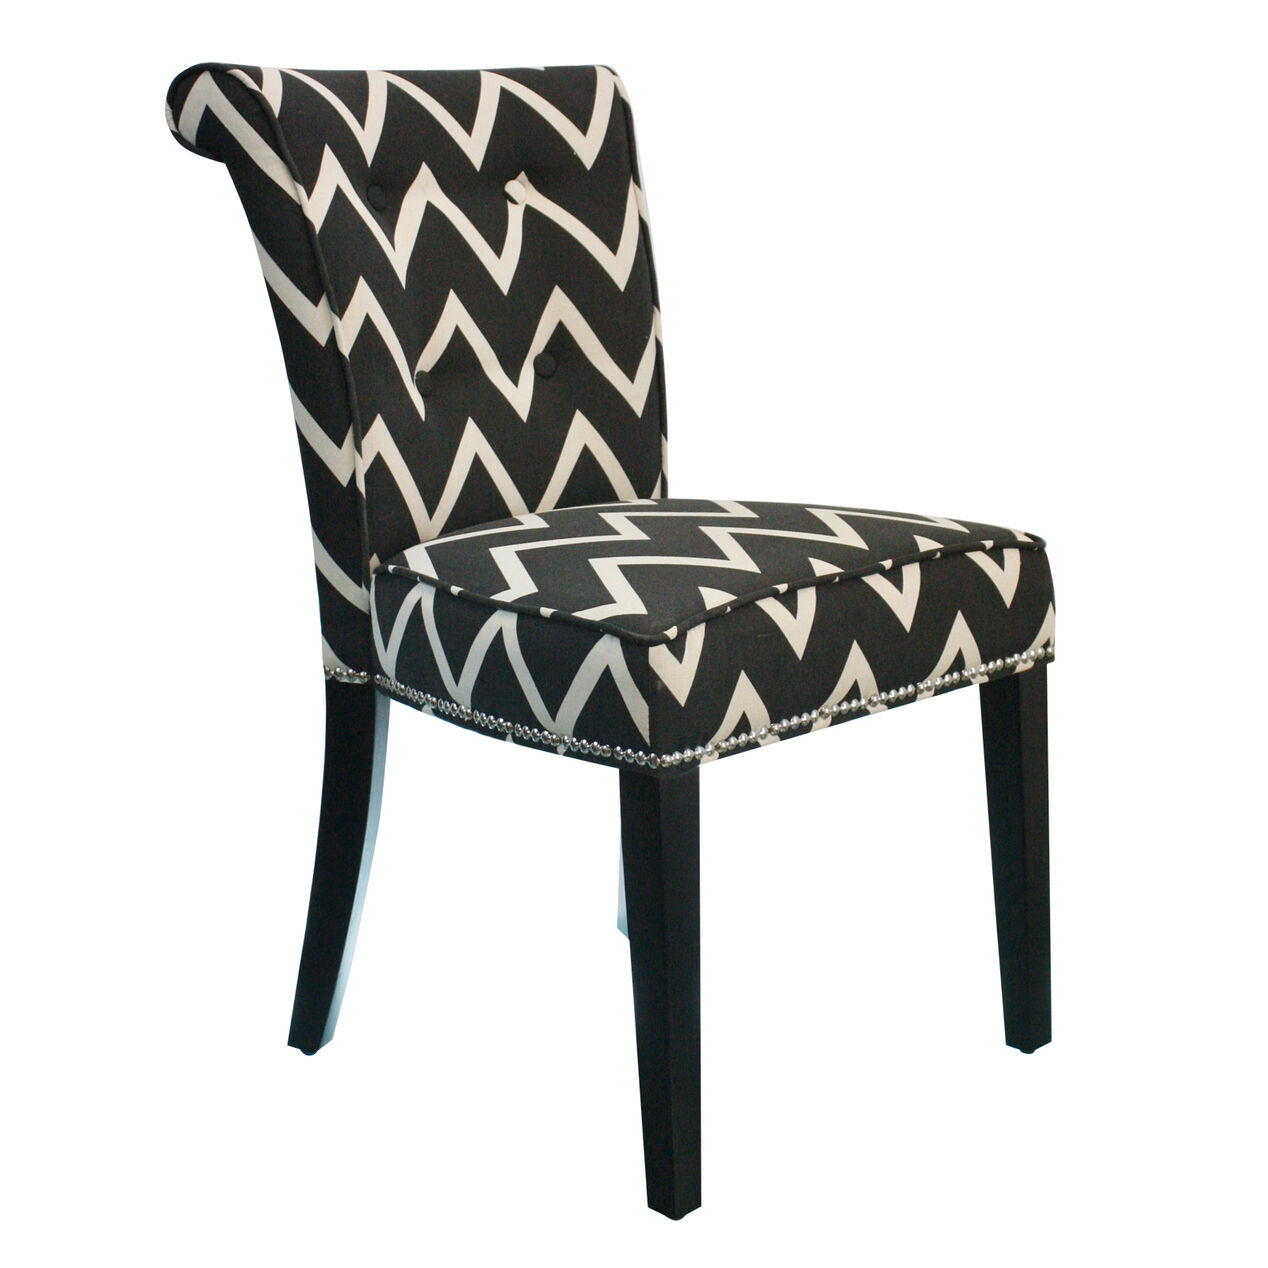 Black chair and white chair - Black And White Chevron Dining Chair